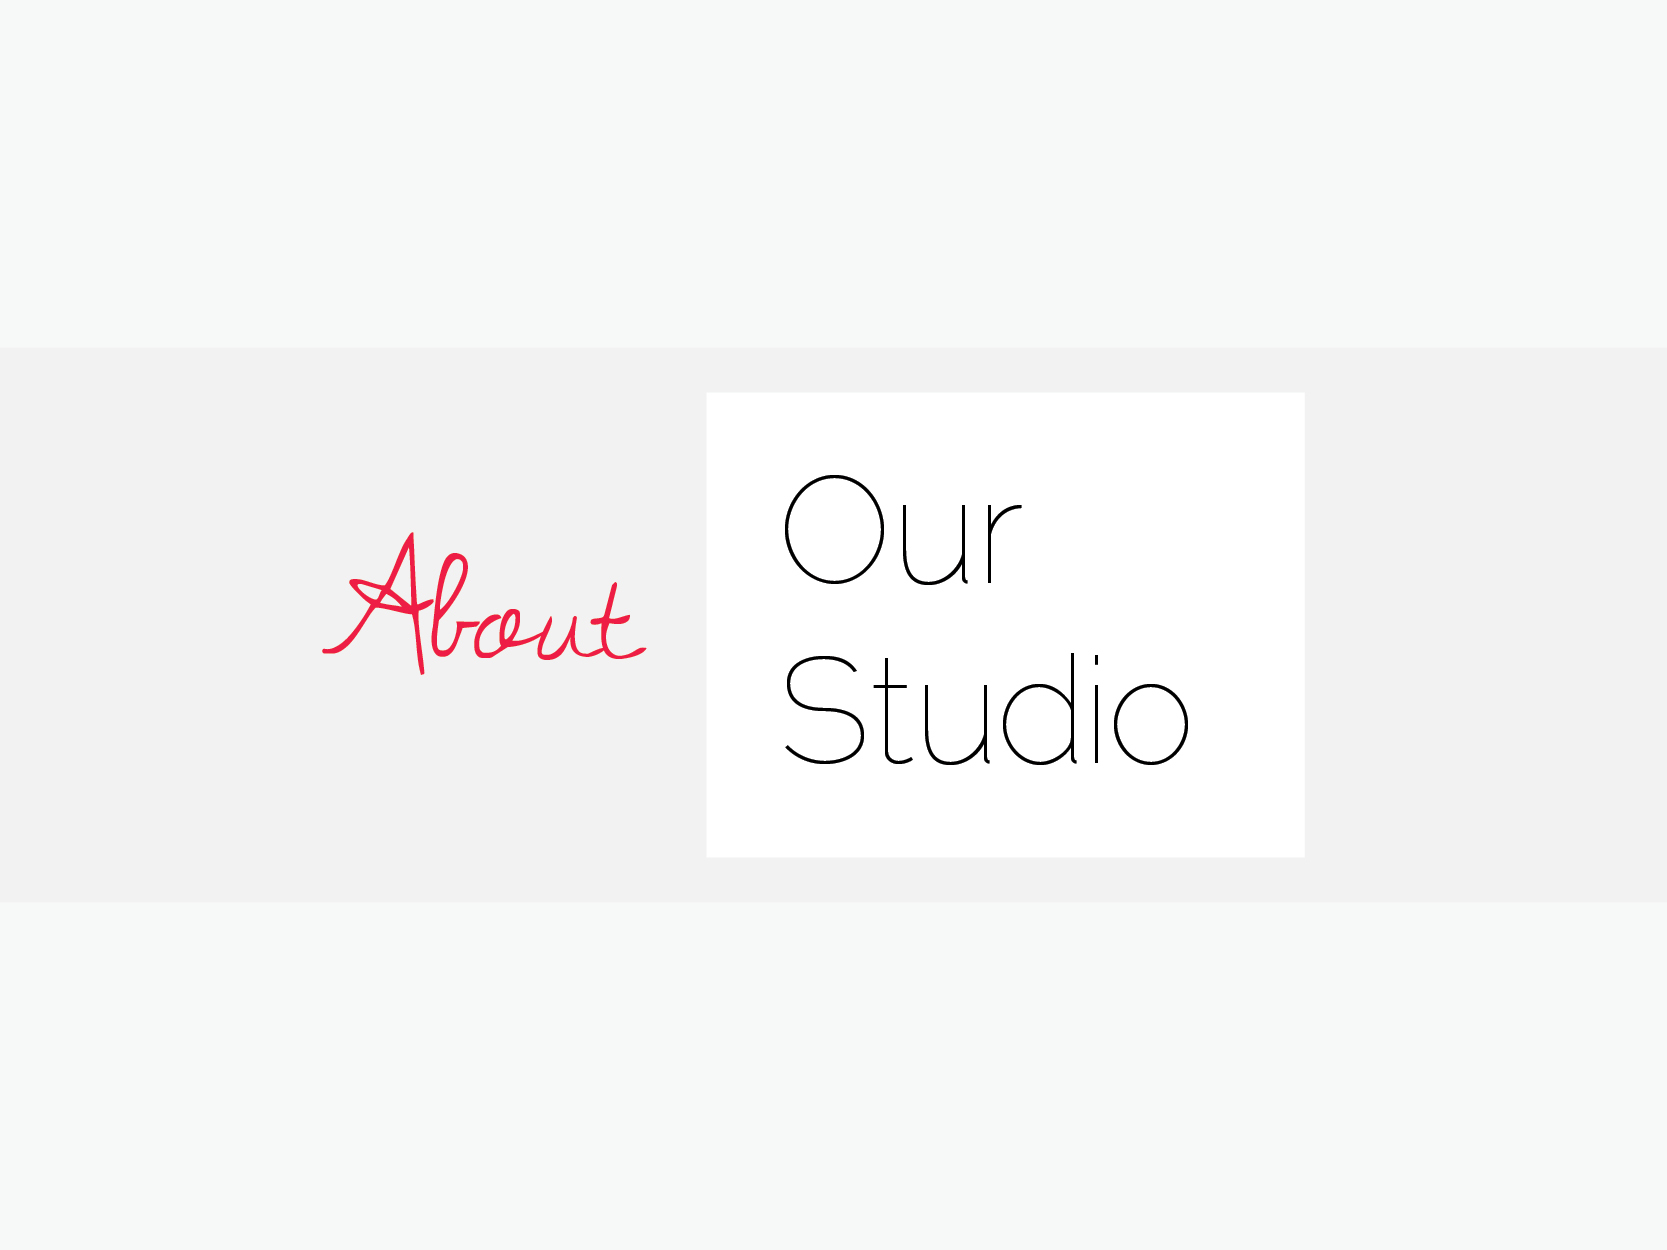 About Our Studio.jpg